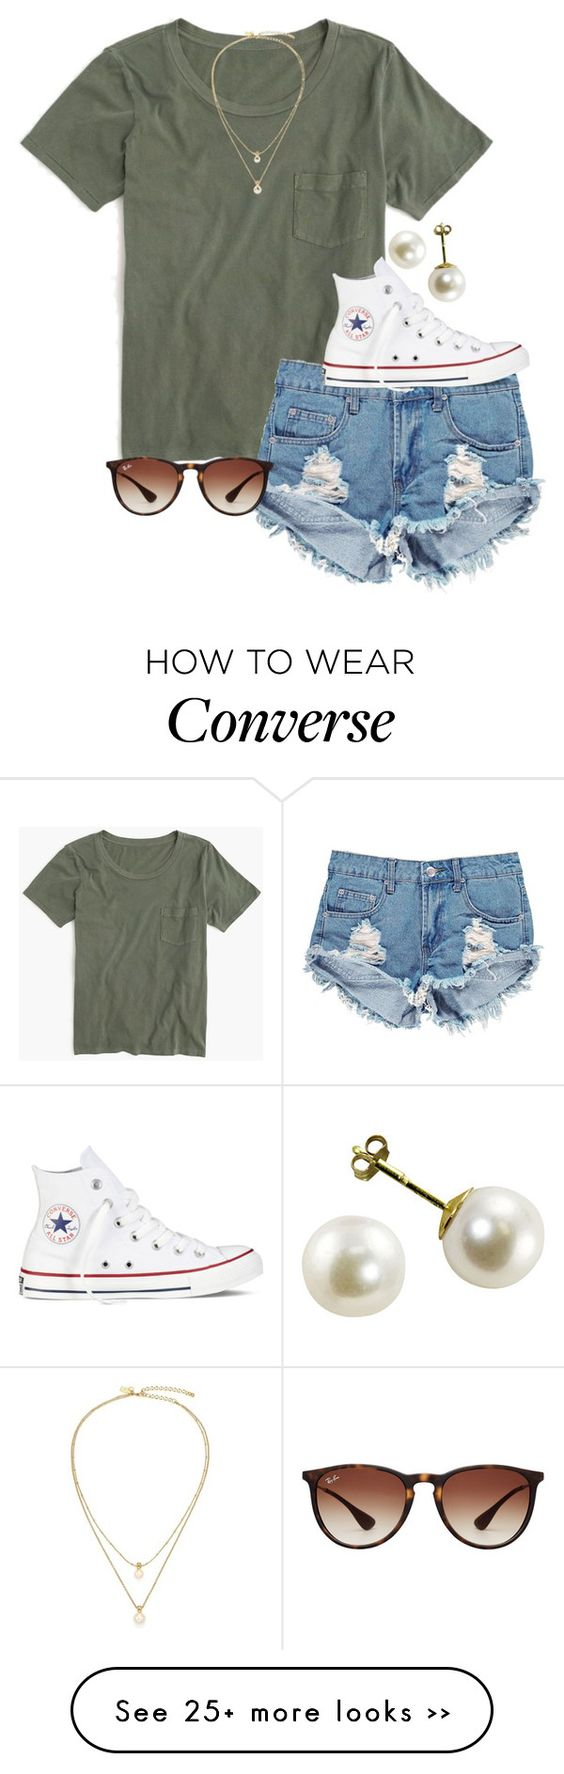 """"""""""" by econgdon on Polyvore featuring J.Crew, Boohoo, Kate Spade, Converse and Ray-Ban"""